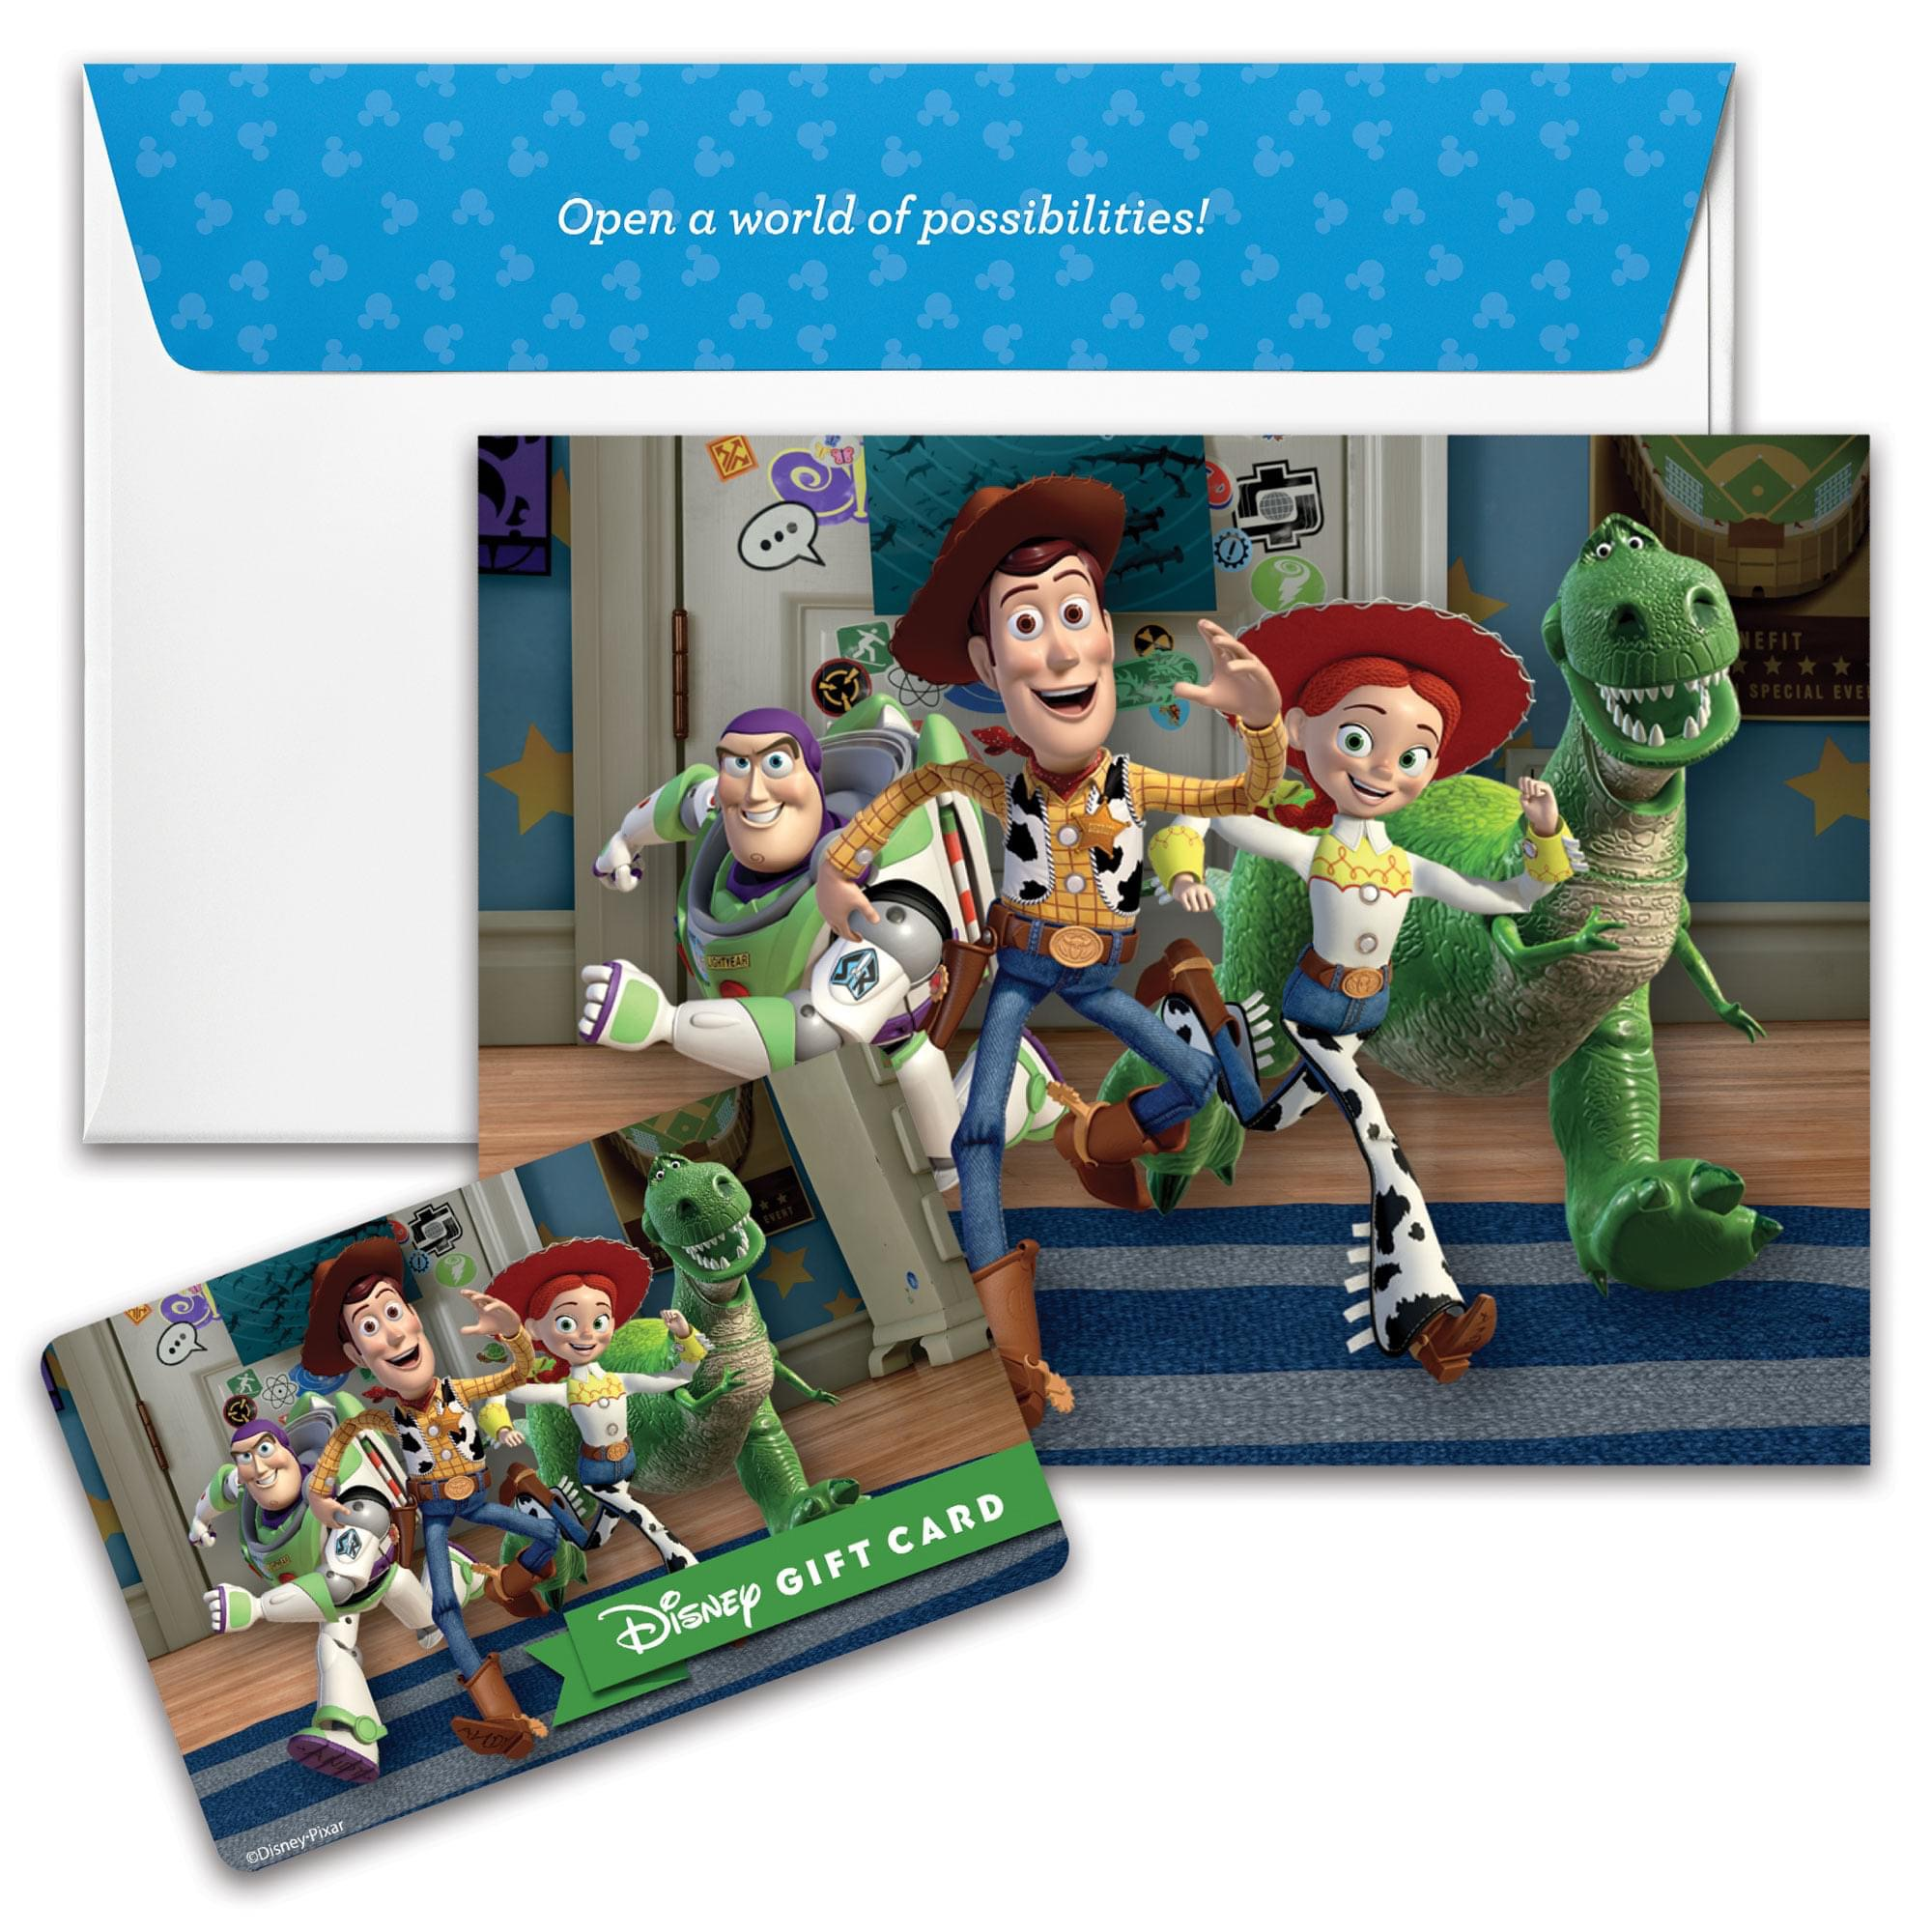 New Disney Gift Card Designs for Your Holiday Gift Giving from shopDisney! 14